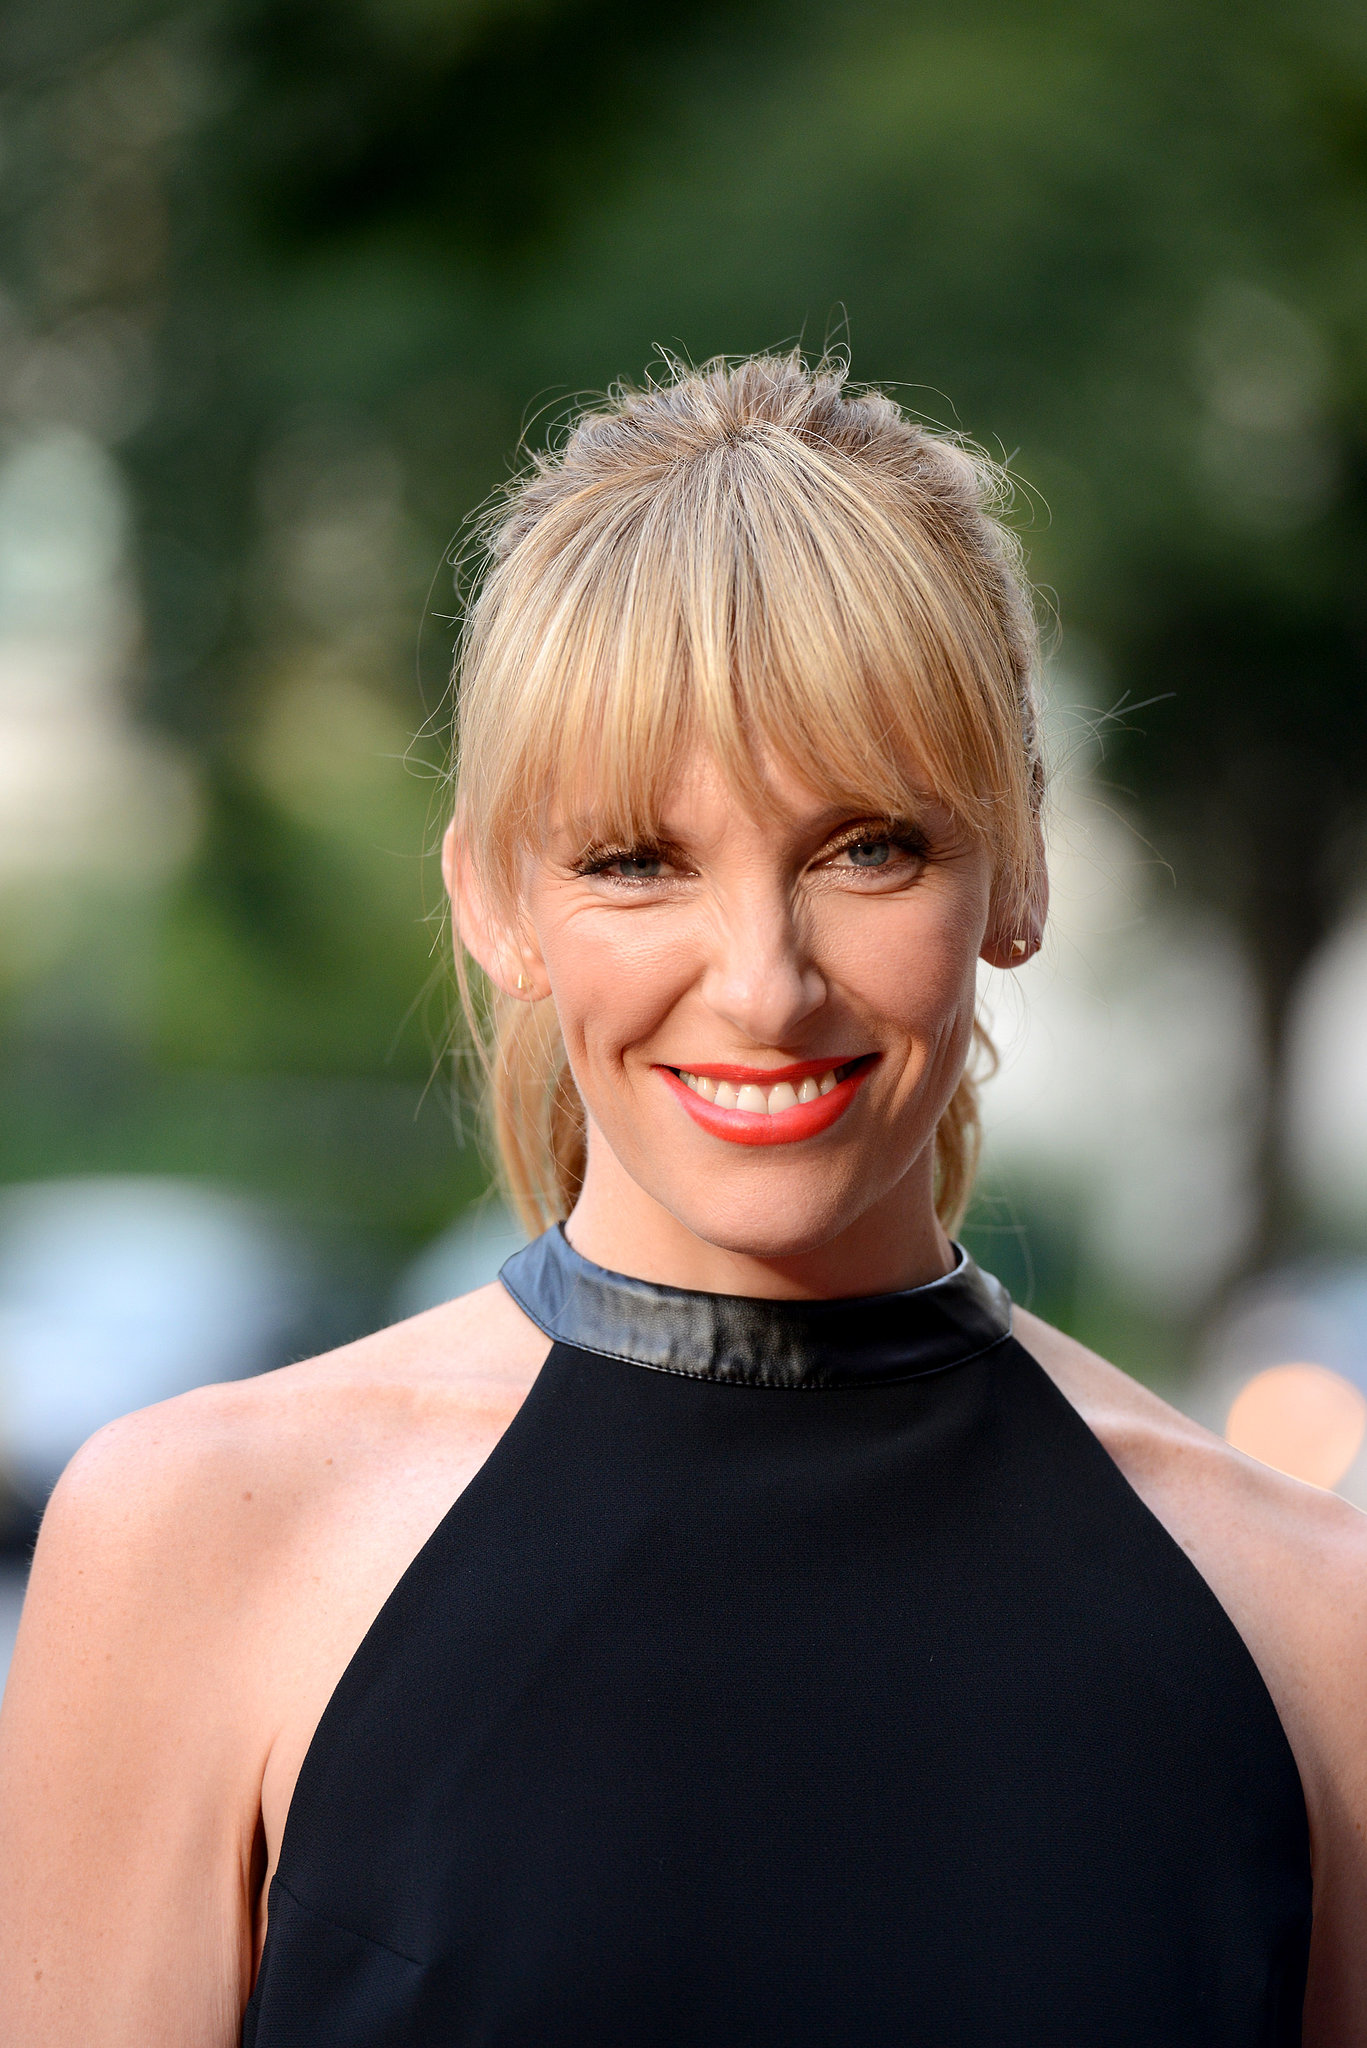 Toni Collette dazzled in a red-orange lip while attending the Lucky Them premiere at TIFF.